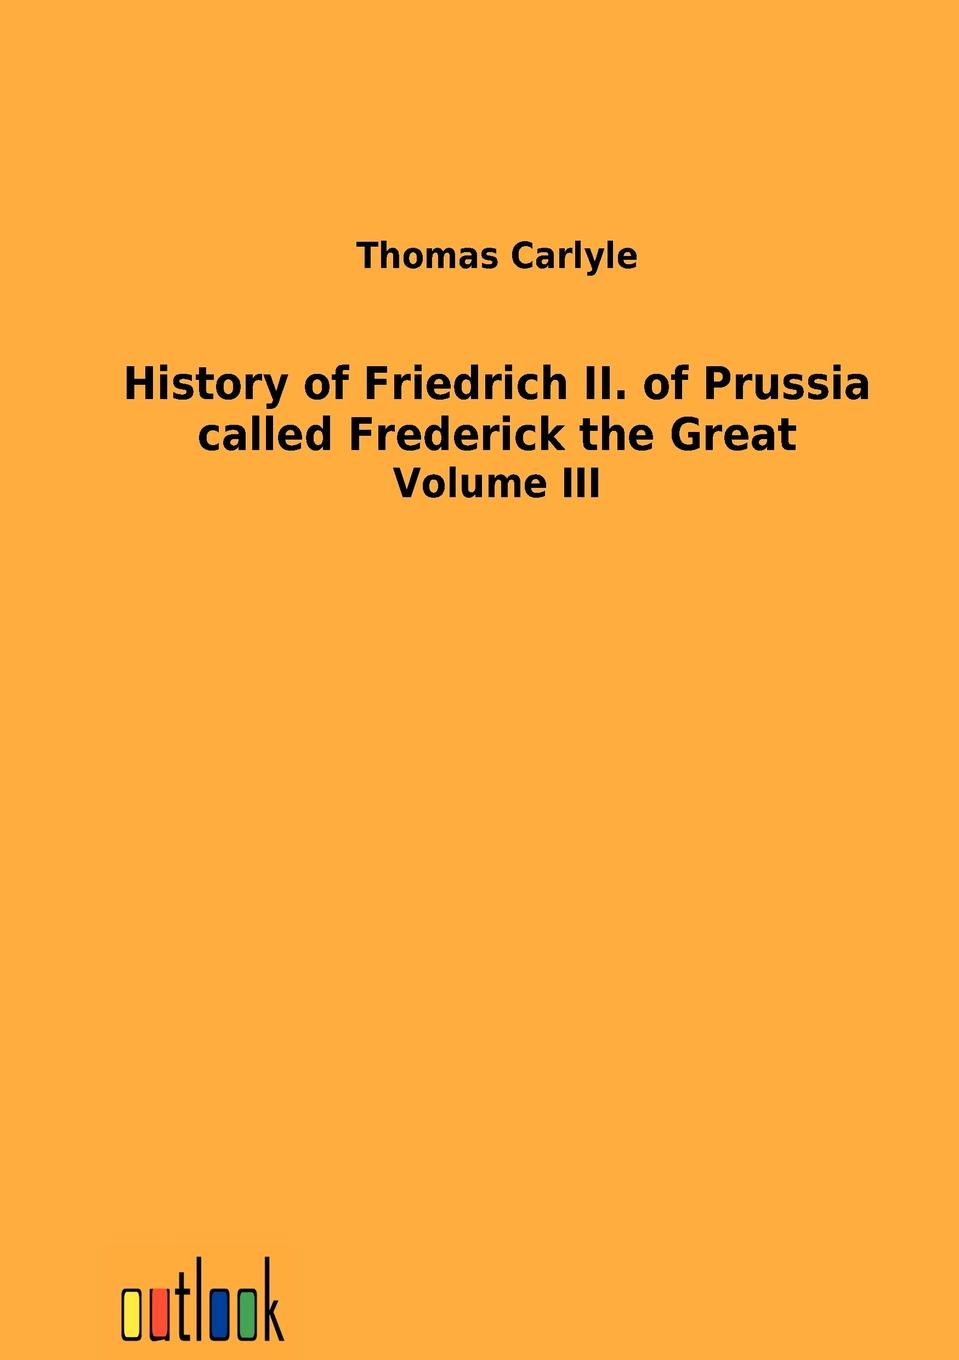 Thomas Carlyle History of Friedrich II. of Prussia called Frederick the Great thomas carlyle history of friedrich ii of prussia called frederick the great 4